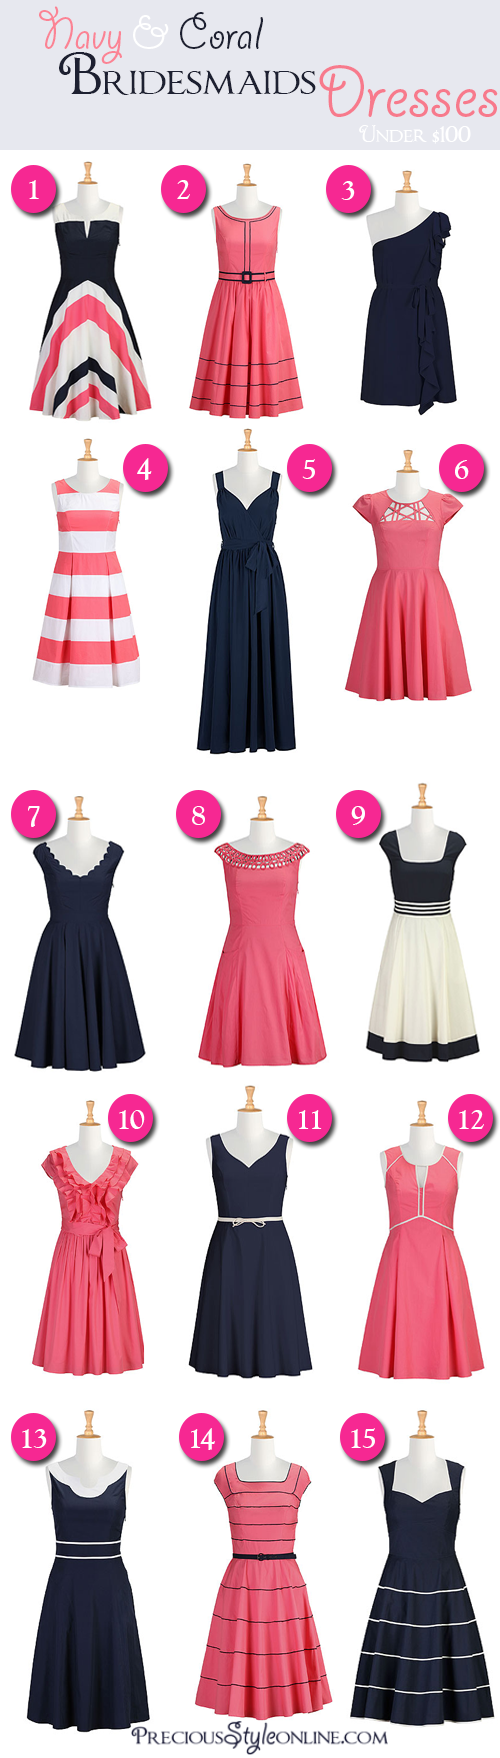 Navy & Coral Dresses